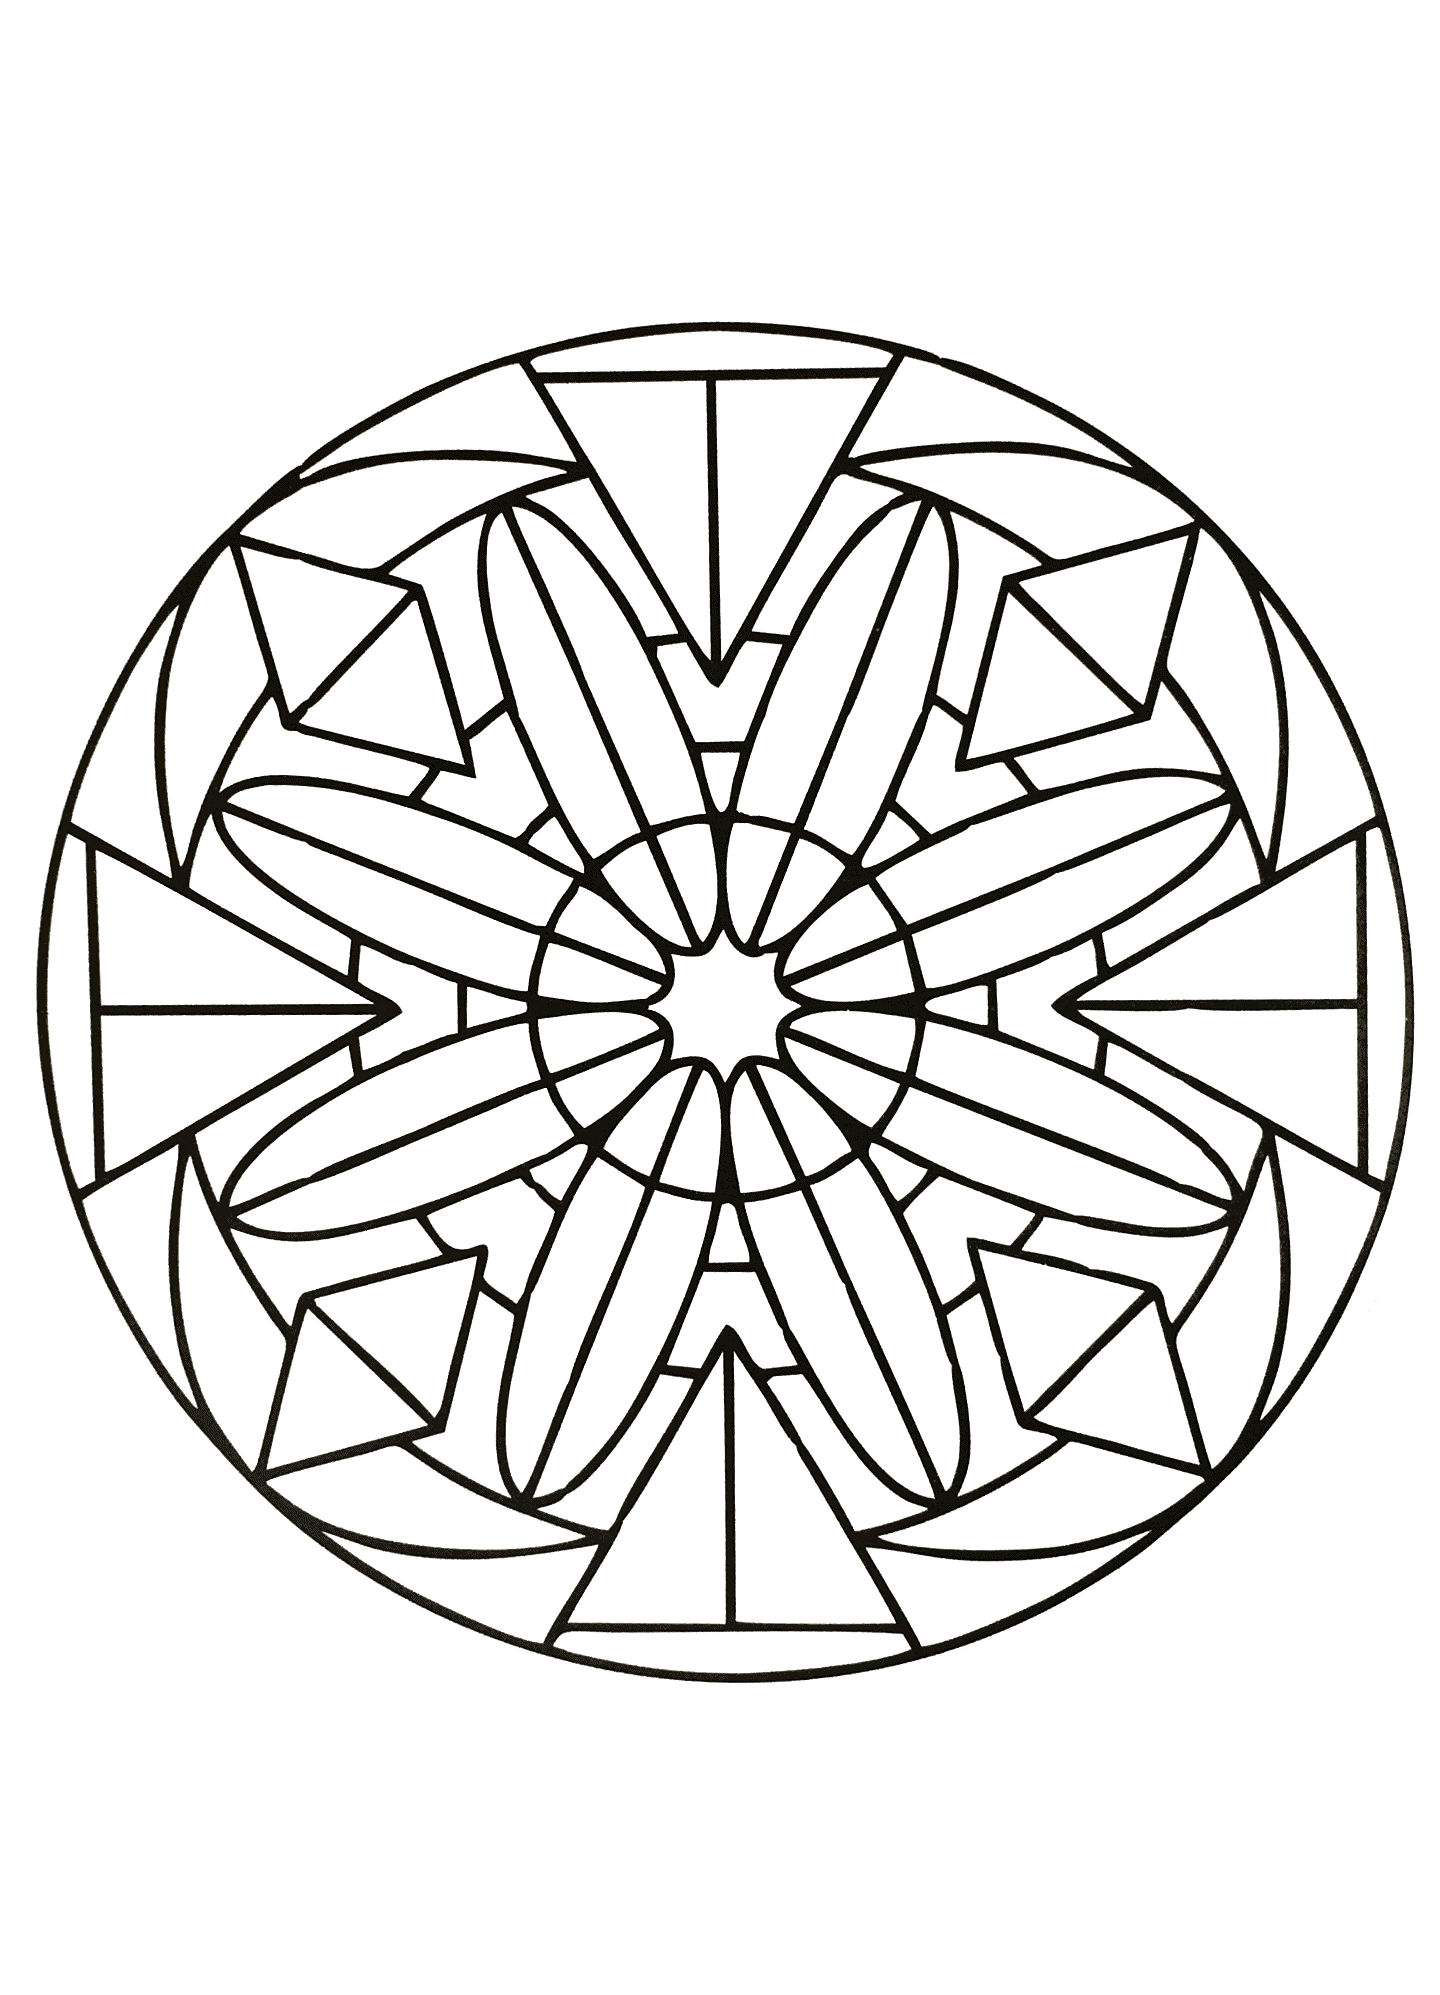 Elegant and harmonious Mandala ... When coloring can really relax you ... This is the case with this Mandala coloring page of high quality.